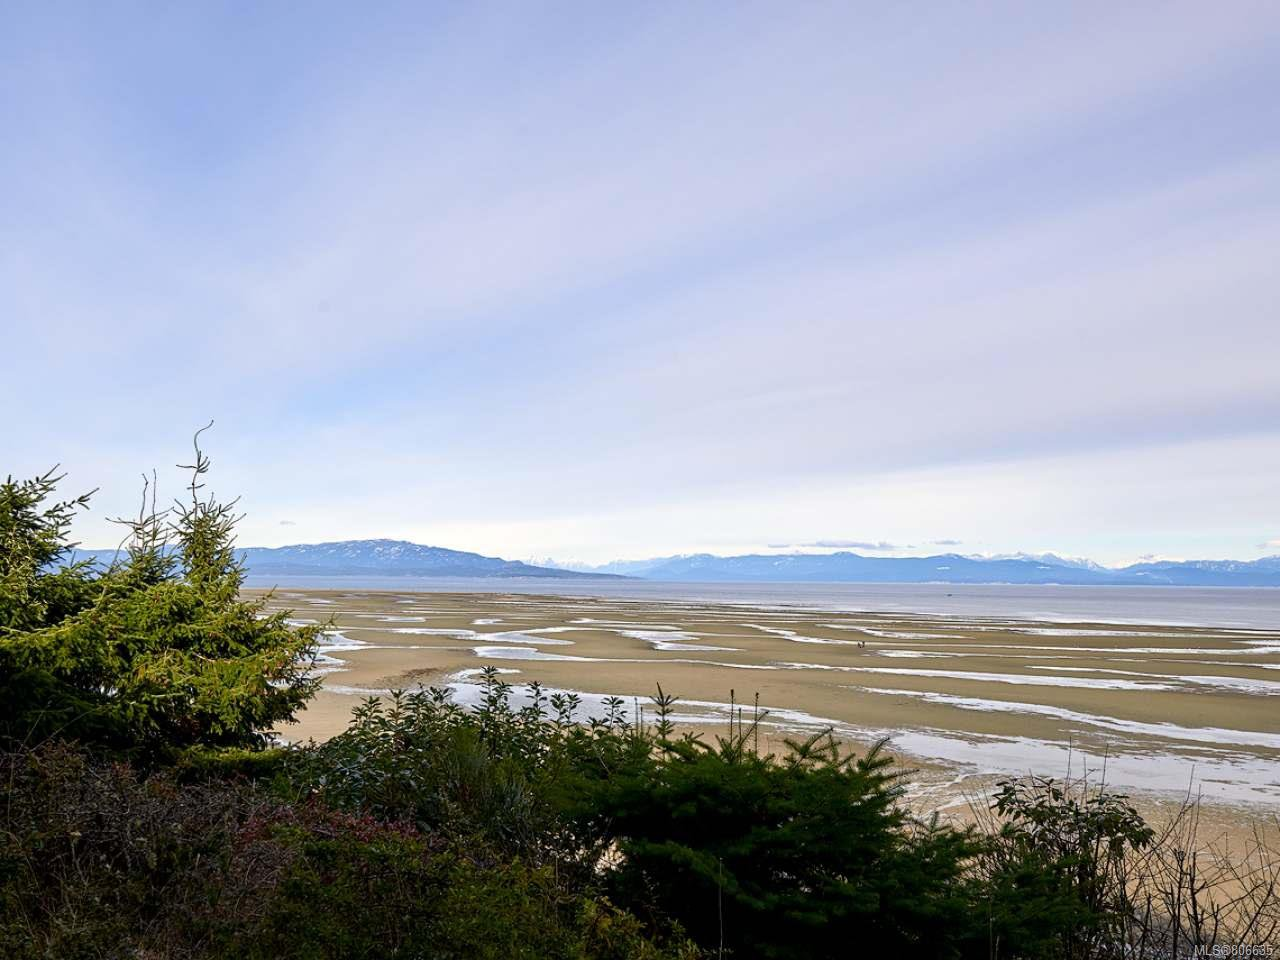 Main Photo: 135 1155 Resort Dr in PARKSVILLE: PQ Parksville Condo for sale (Parksville/Qualicum)  : MLS®# 806635